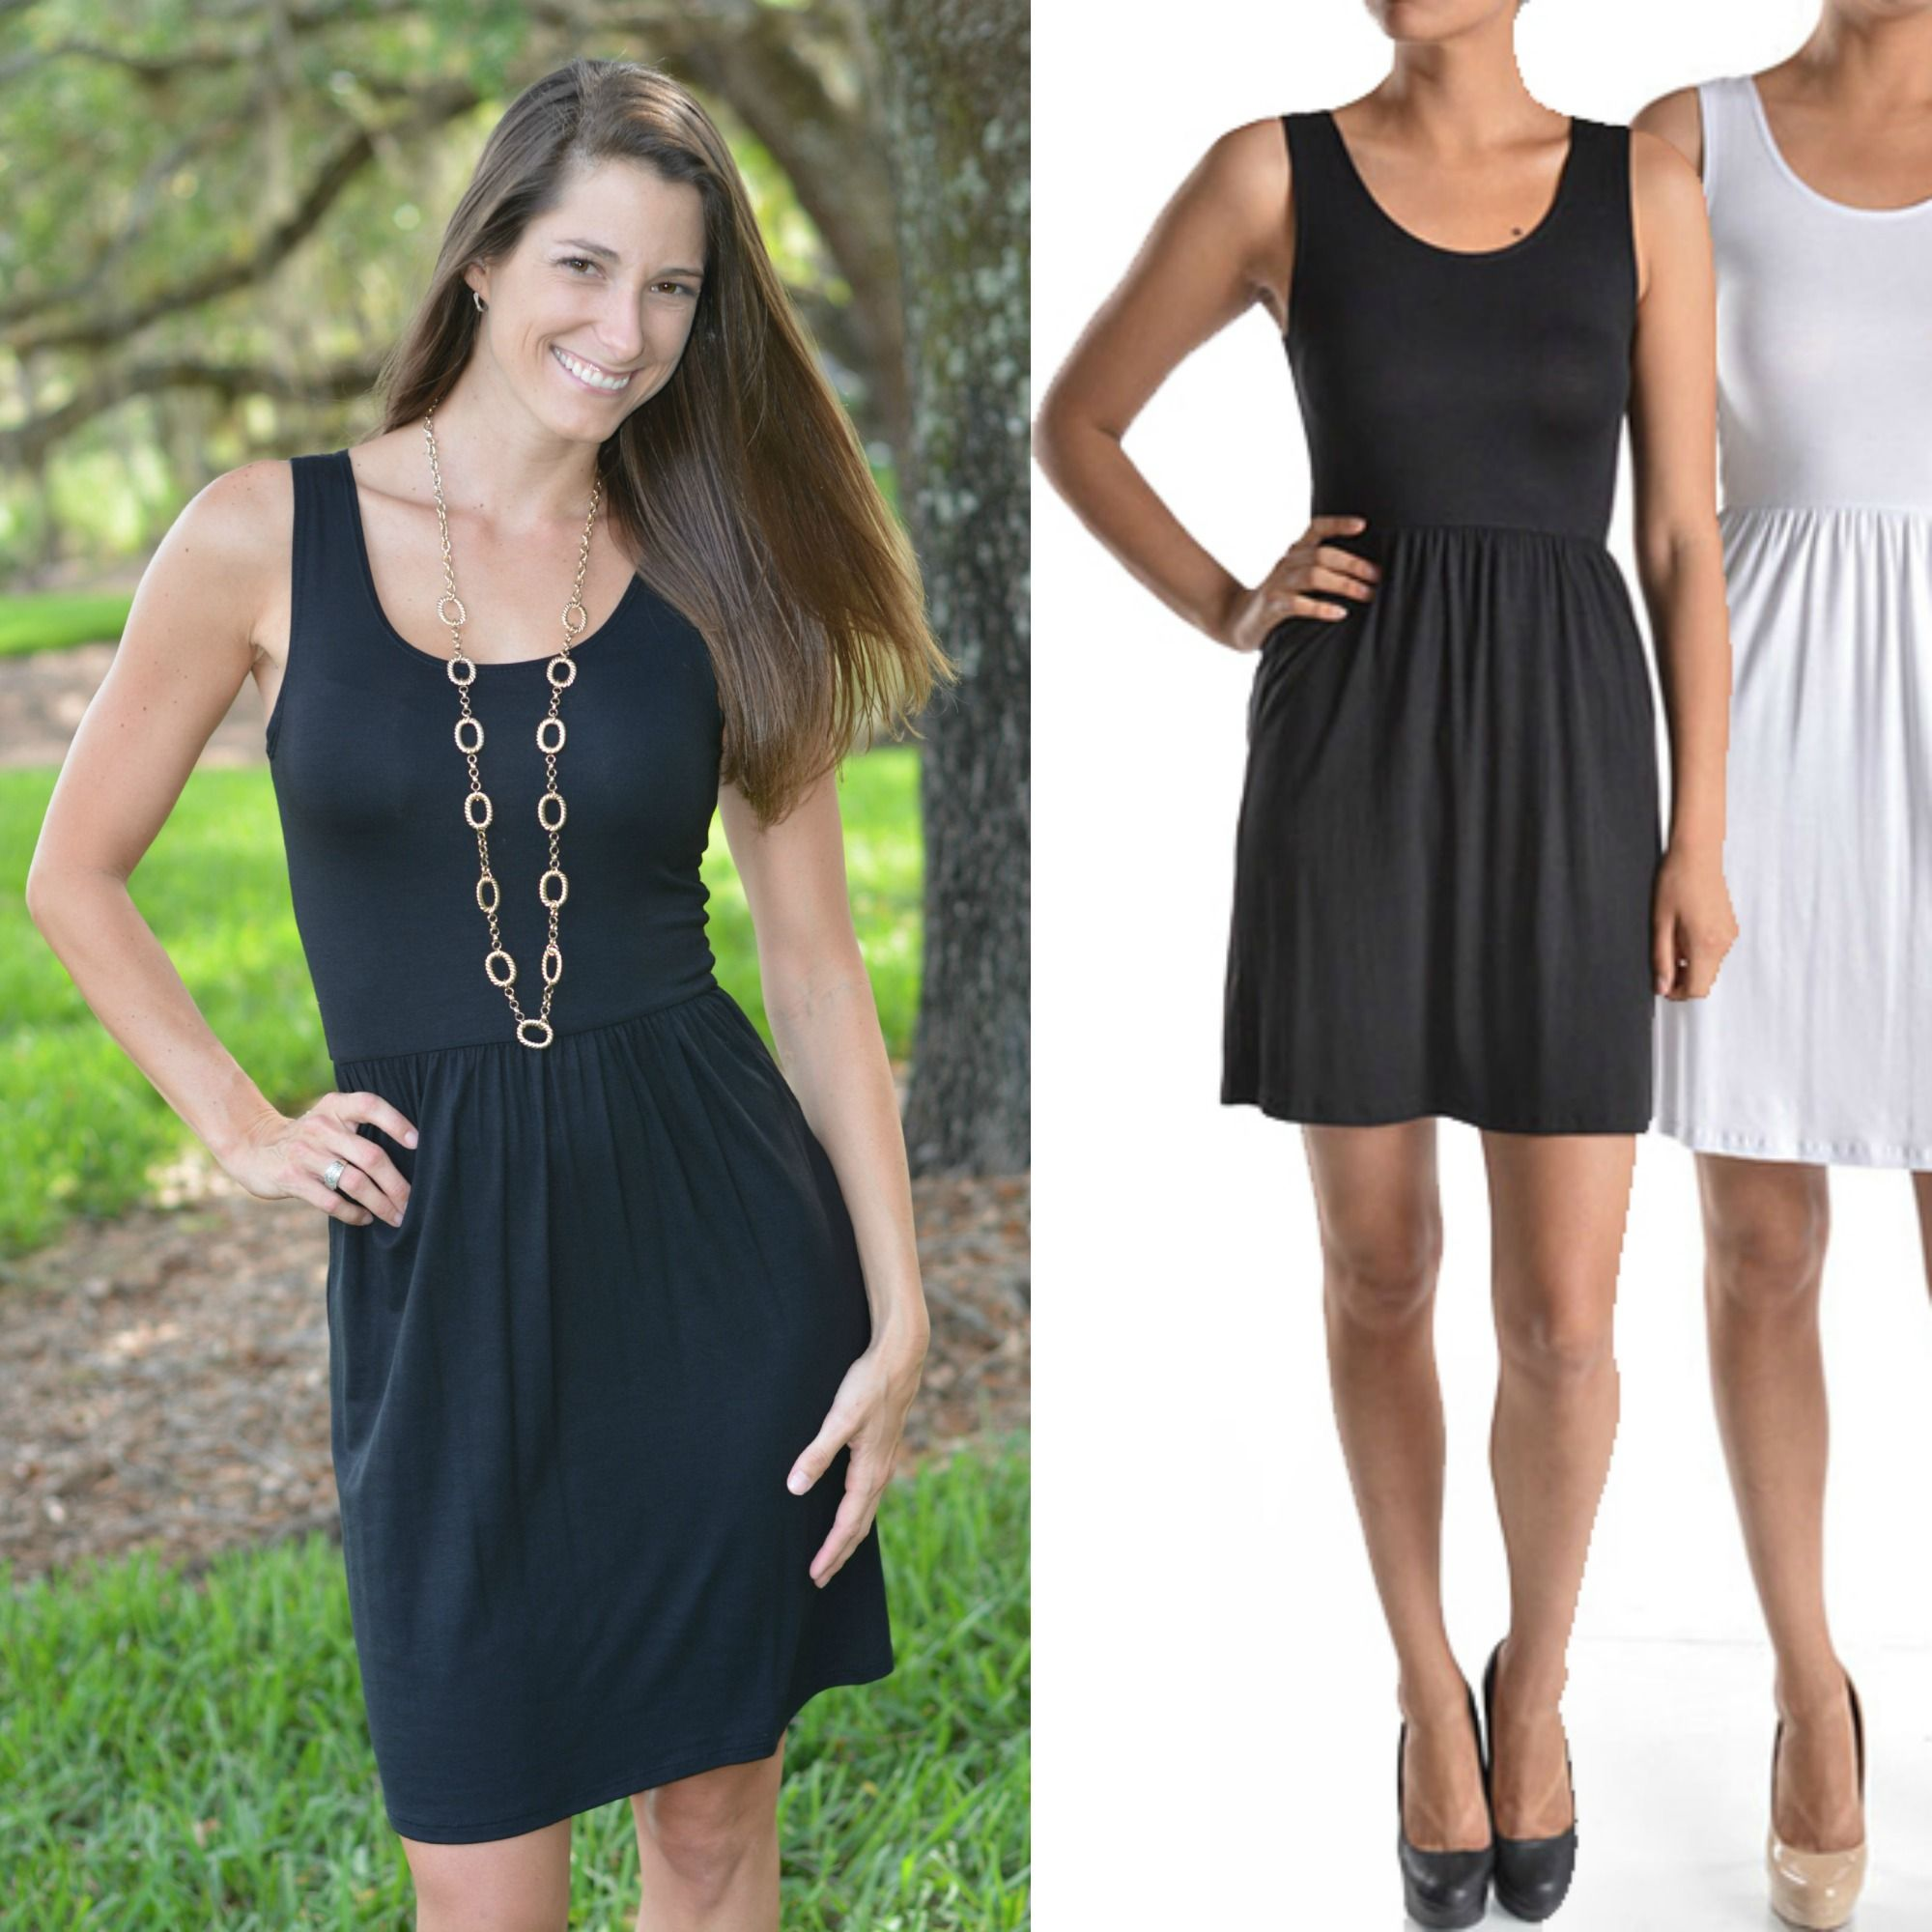 SHOPSIMPLYME.com – Shop Simply Me – Clothing boutique Naples, FL - #shopsimply